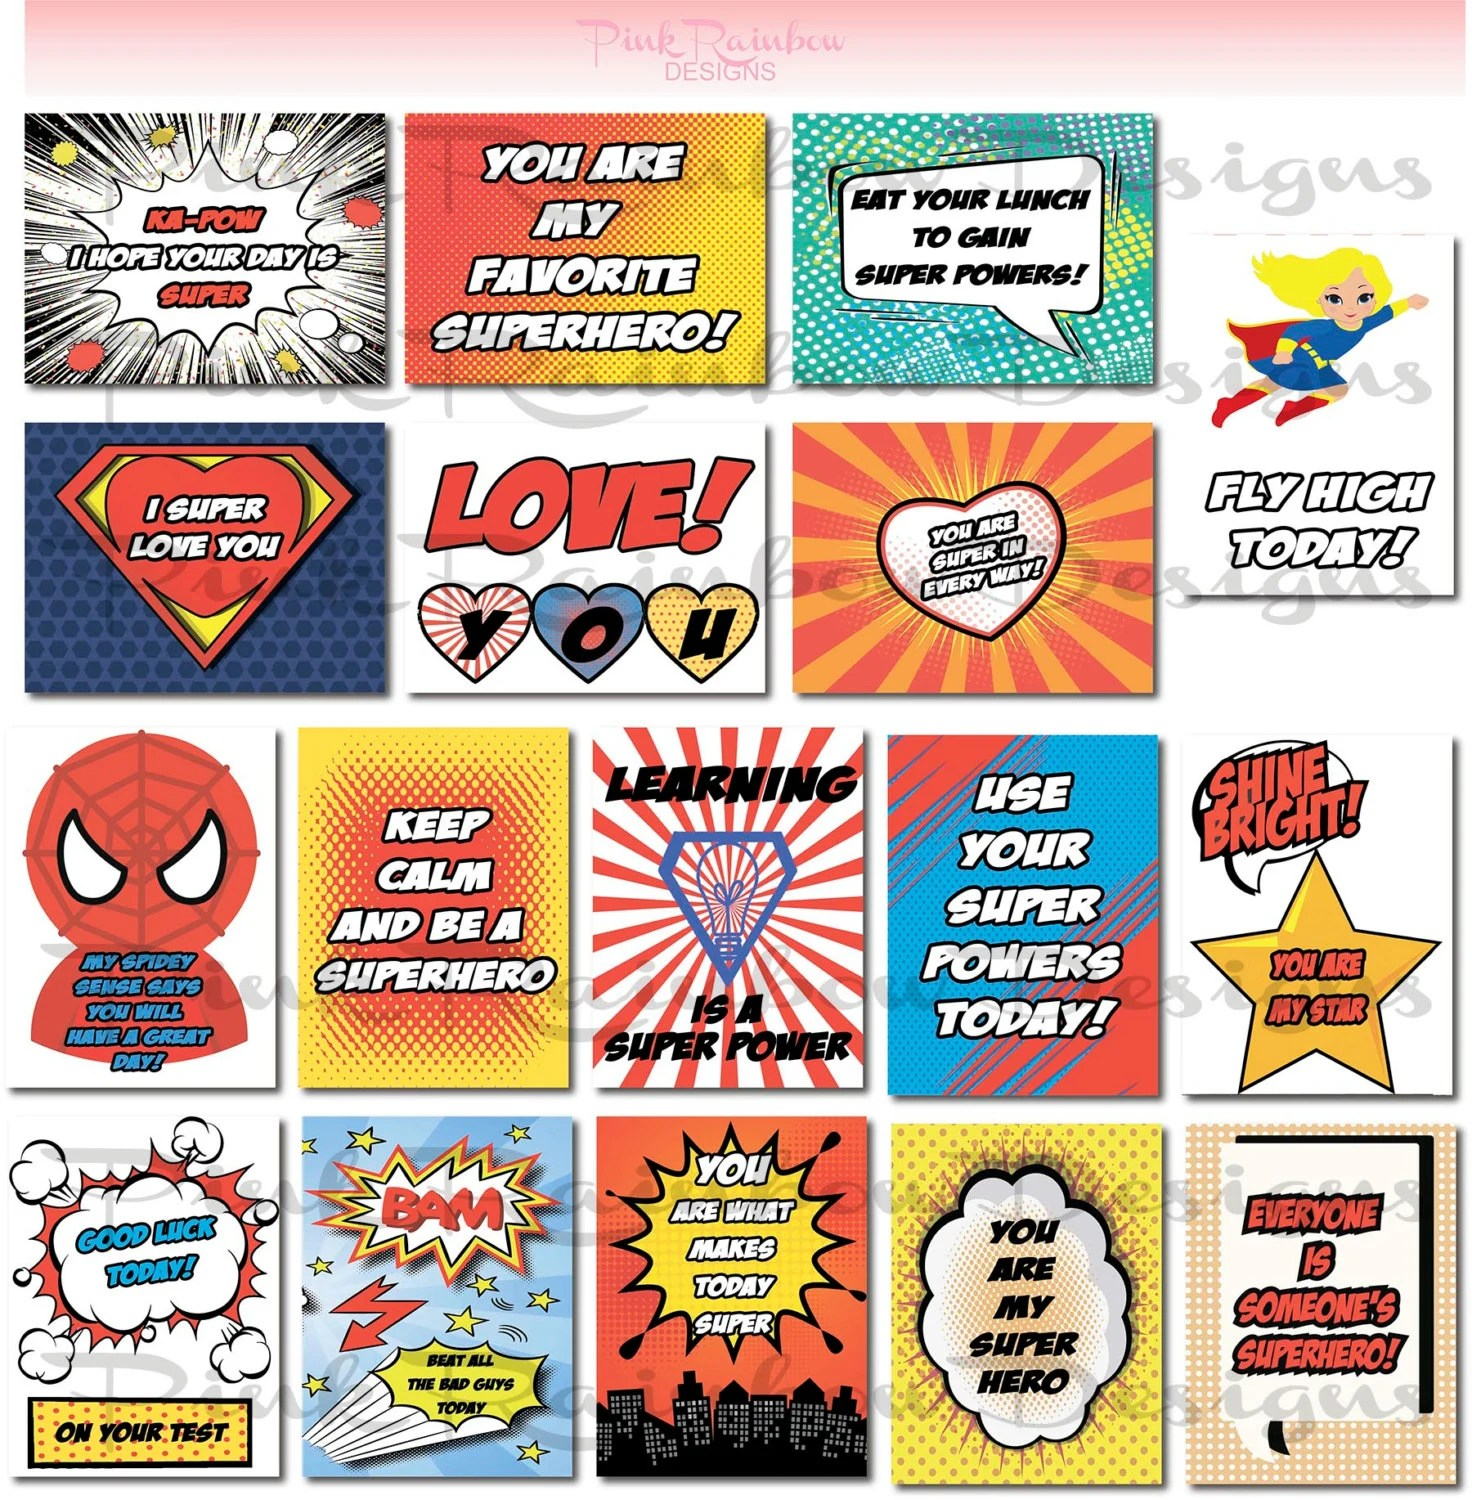 Superhero Lunch Box Note Cards With Motivational Messages For Kids Children Kindergarten